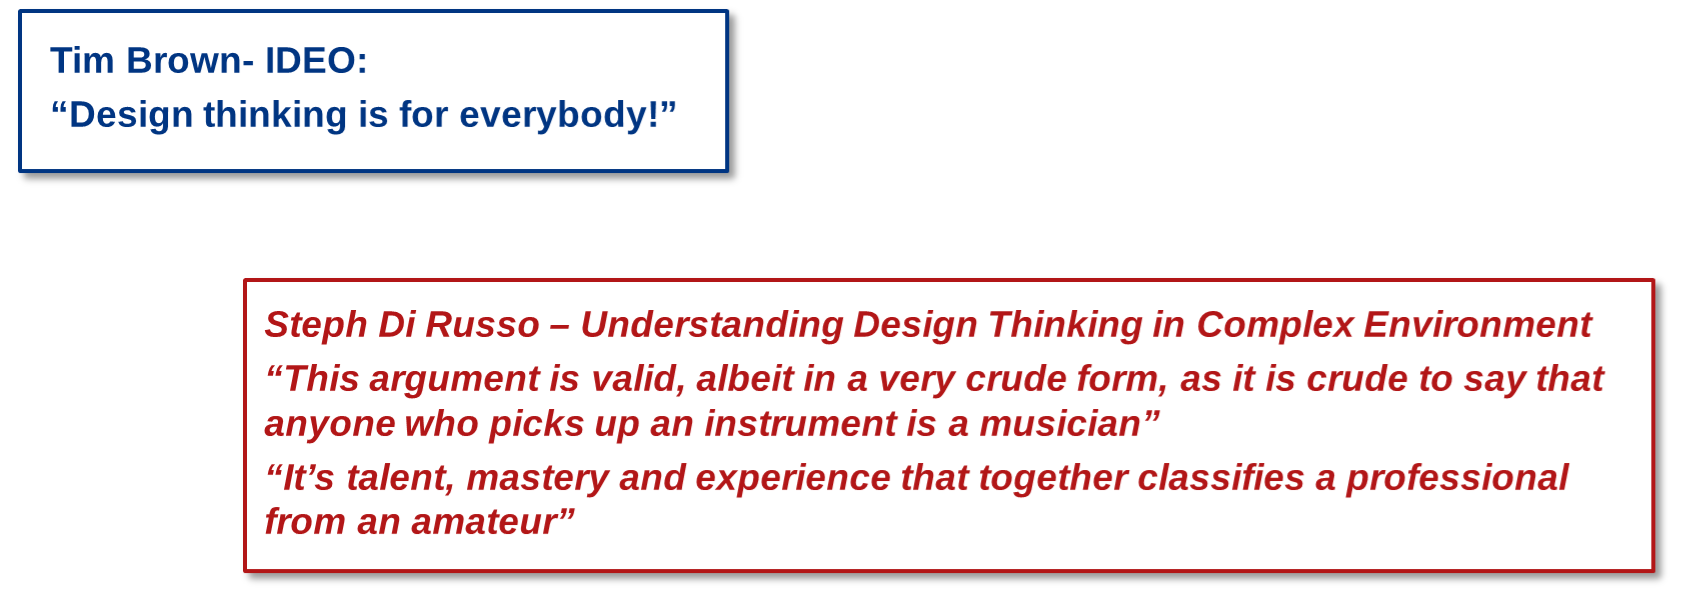 Design thinking - Different perspectrives